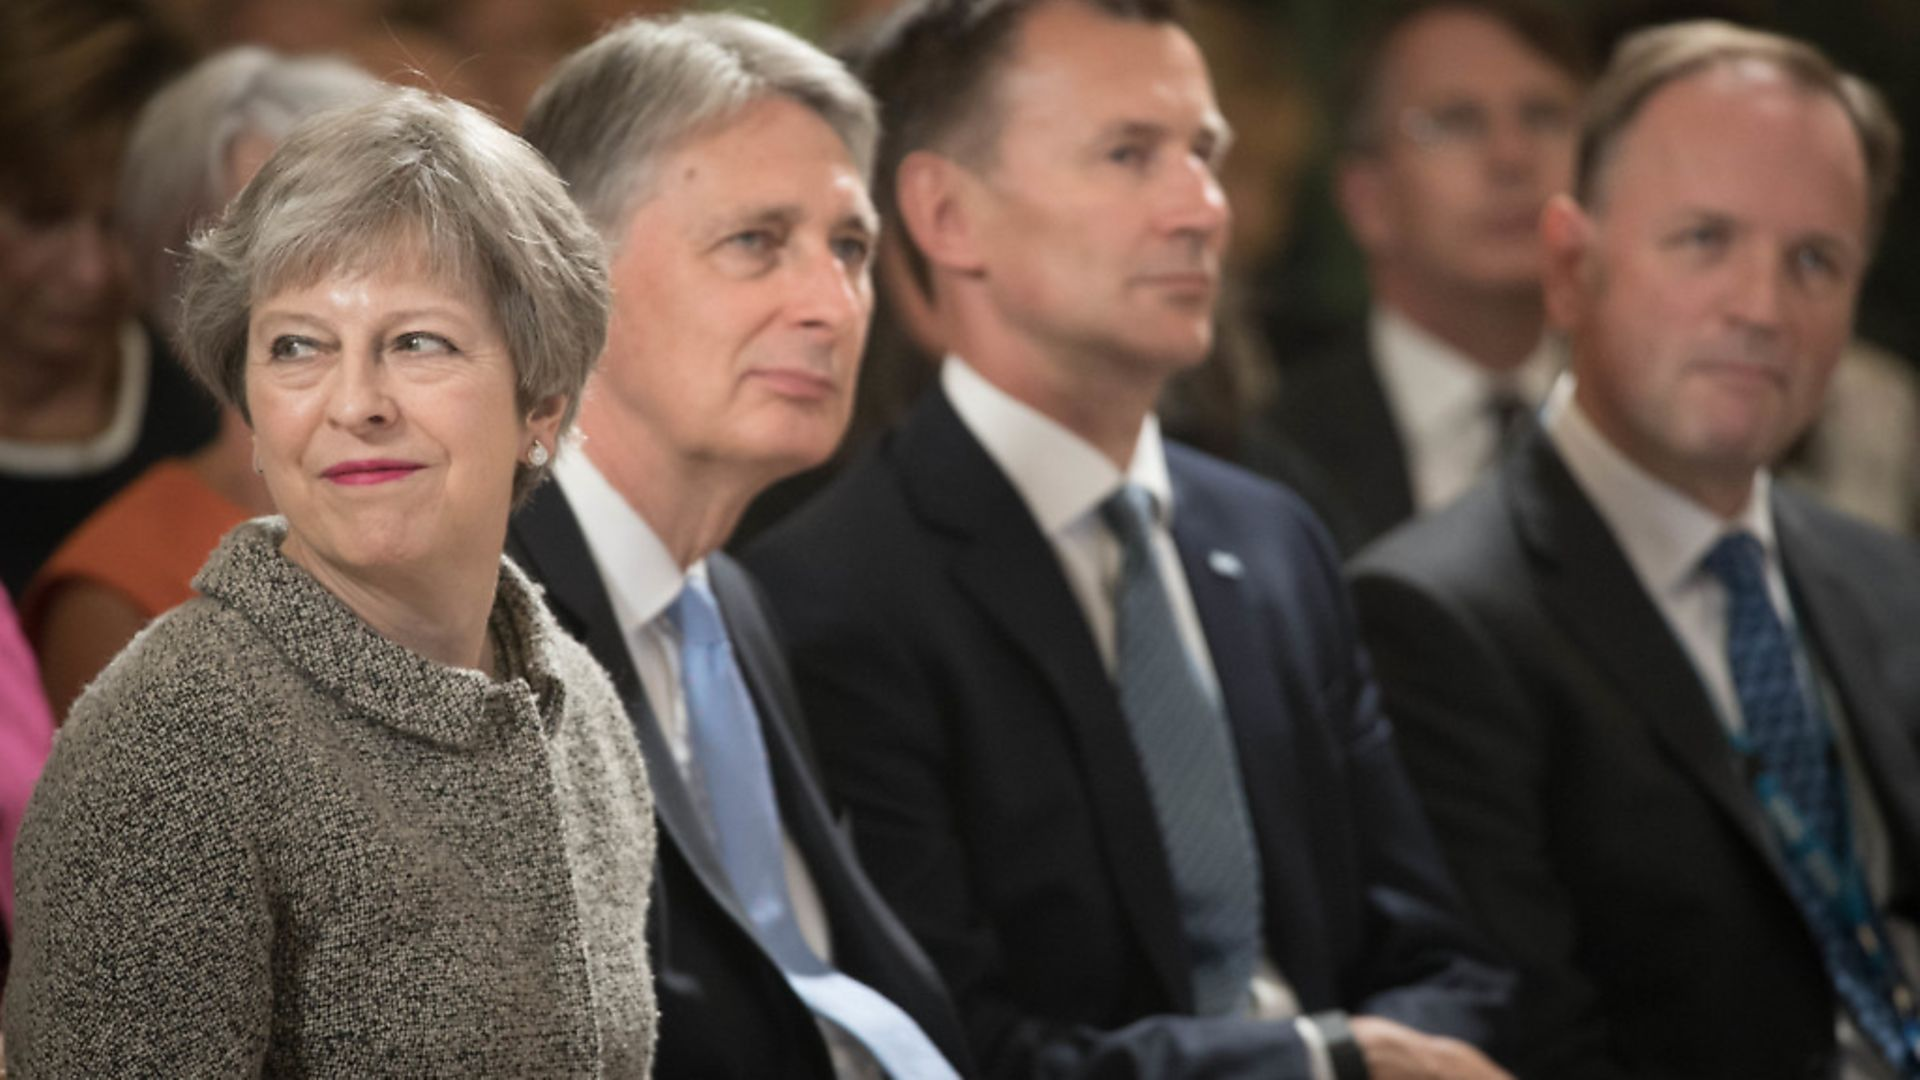 Prime Minister Theresa May, Chancellor Philip Hammond, Health Secretary Jeremy Hunt and NHS Chief Executive Simon Stevens at the Royal Free Hospital in north London. Photograph: Stefan Rousseau/PA Wire - Credit: PA